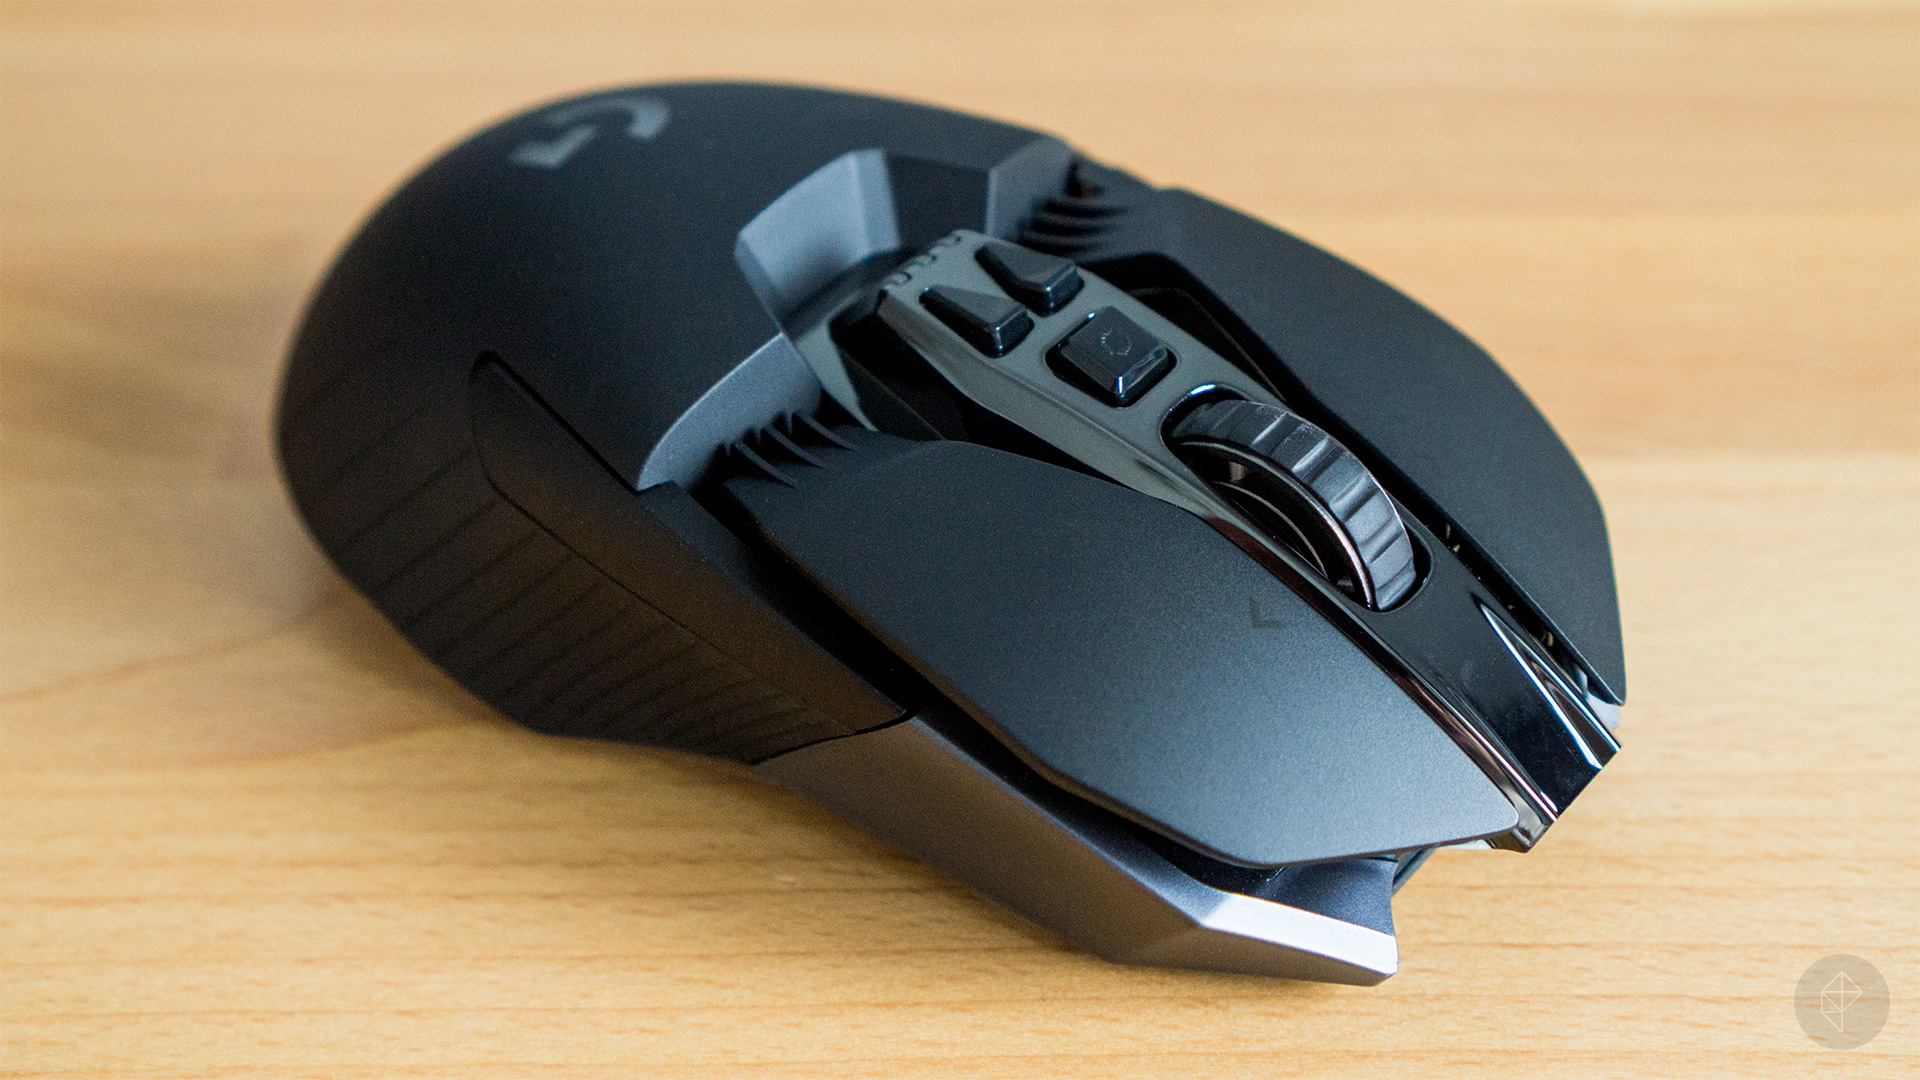 ba465f26a1e Logitech's G900 is meant to alleviate your concerns about wireless gaming  mice - Polygon